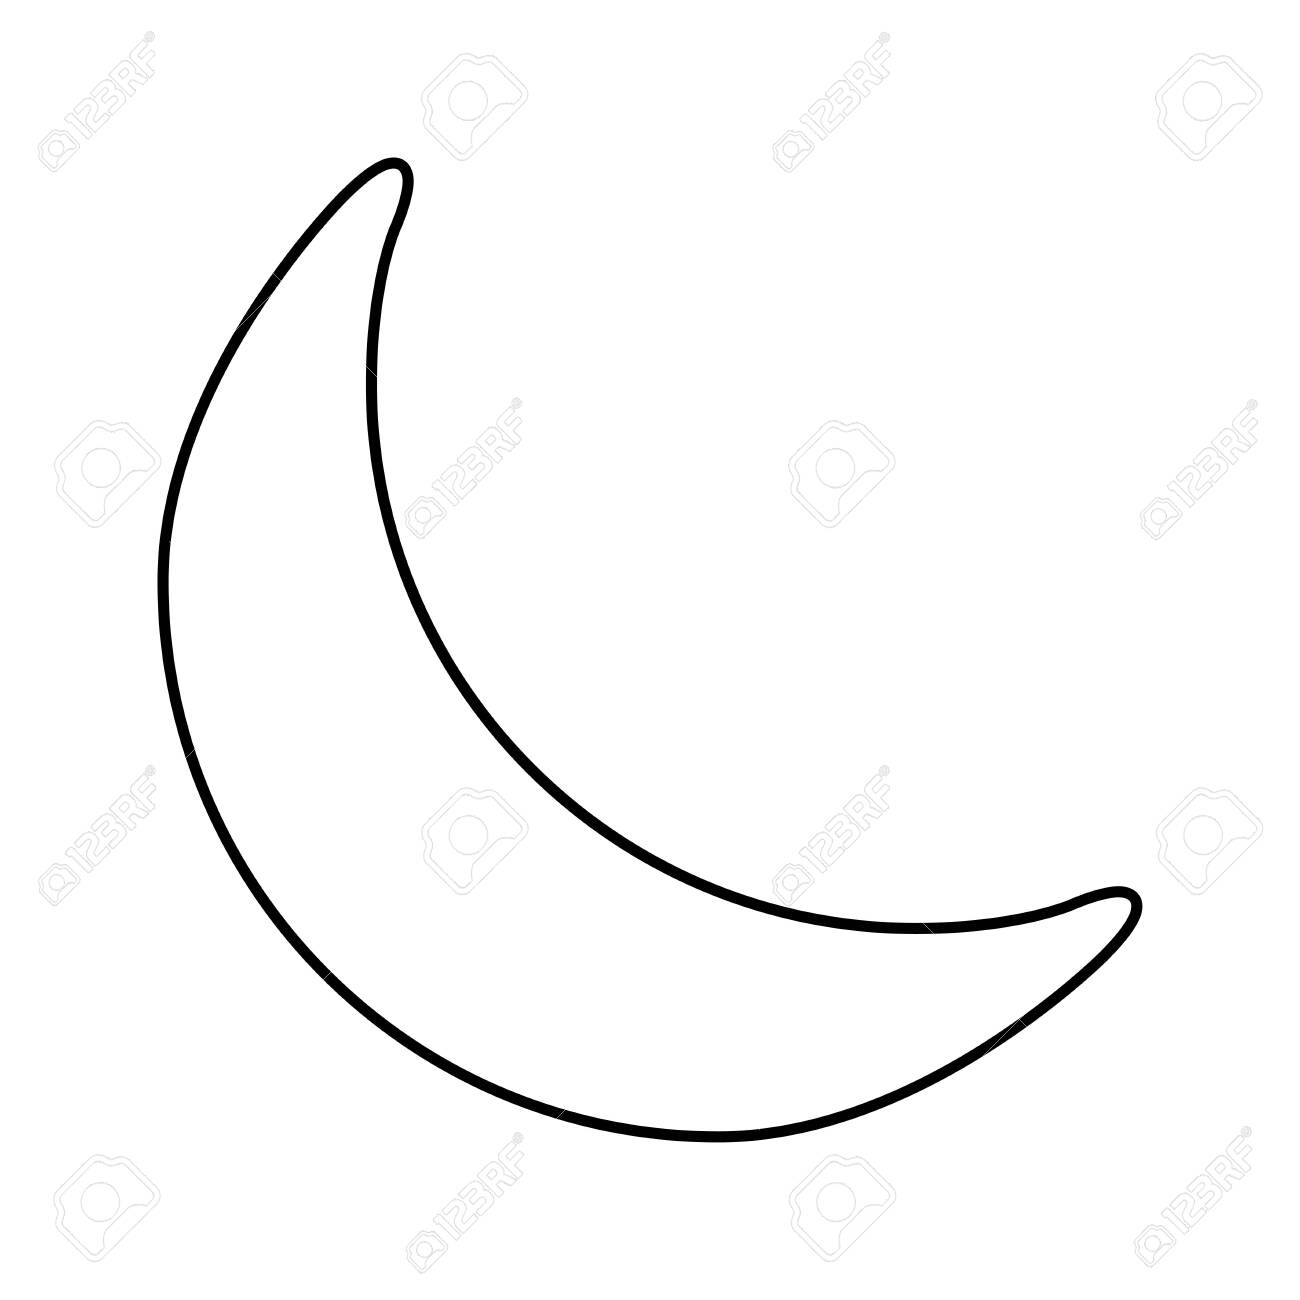 crescent moon outline vector moon for coloring book symbol royalty free cliparts vectors and stock illustration image 136634336 crescent moon outline vector moon for coloring book symbol